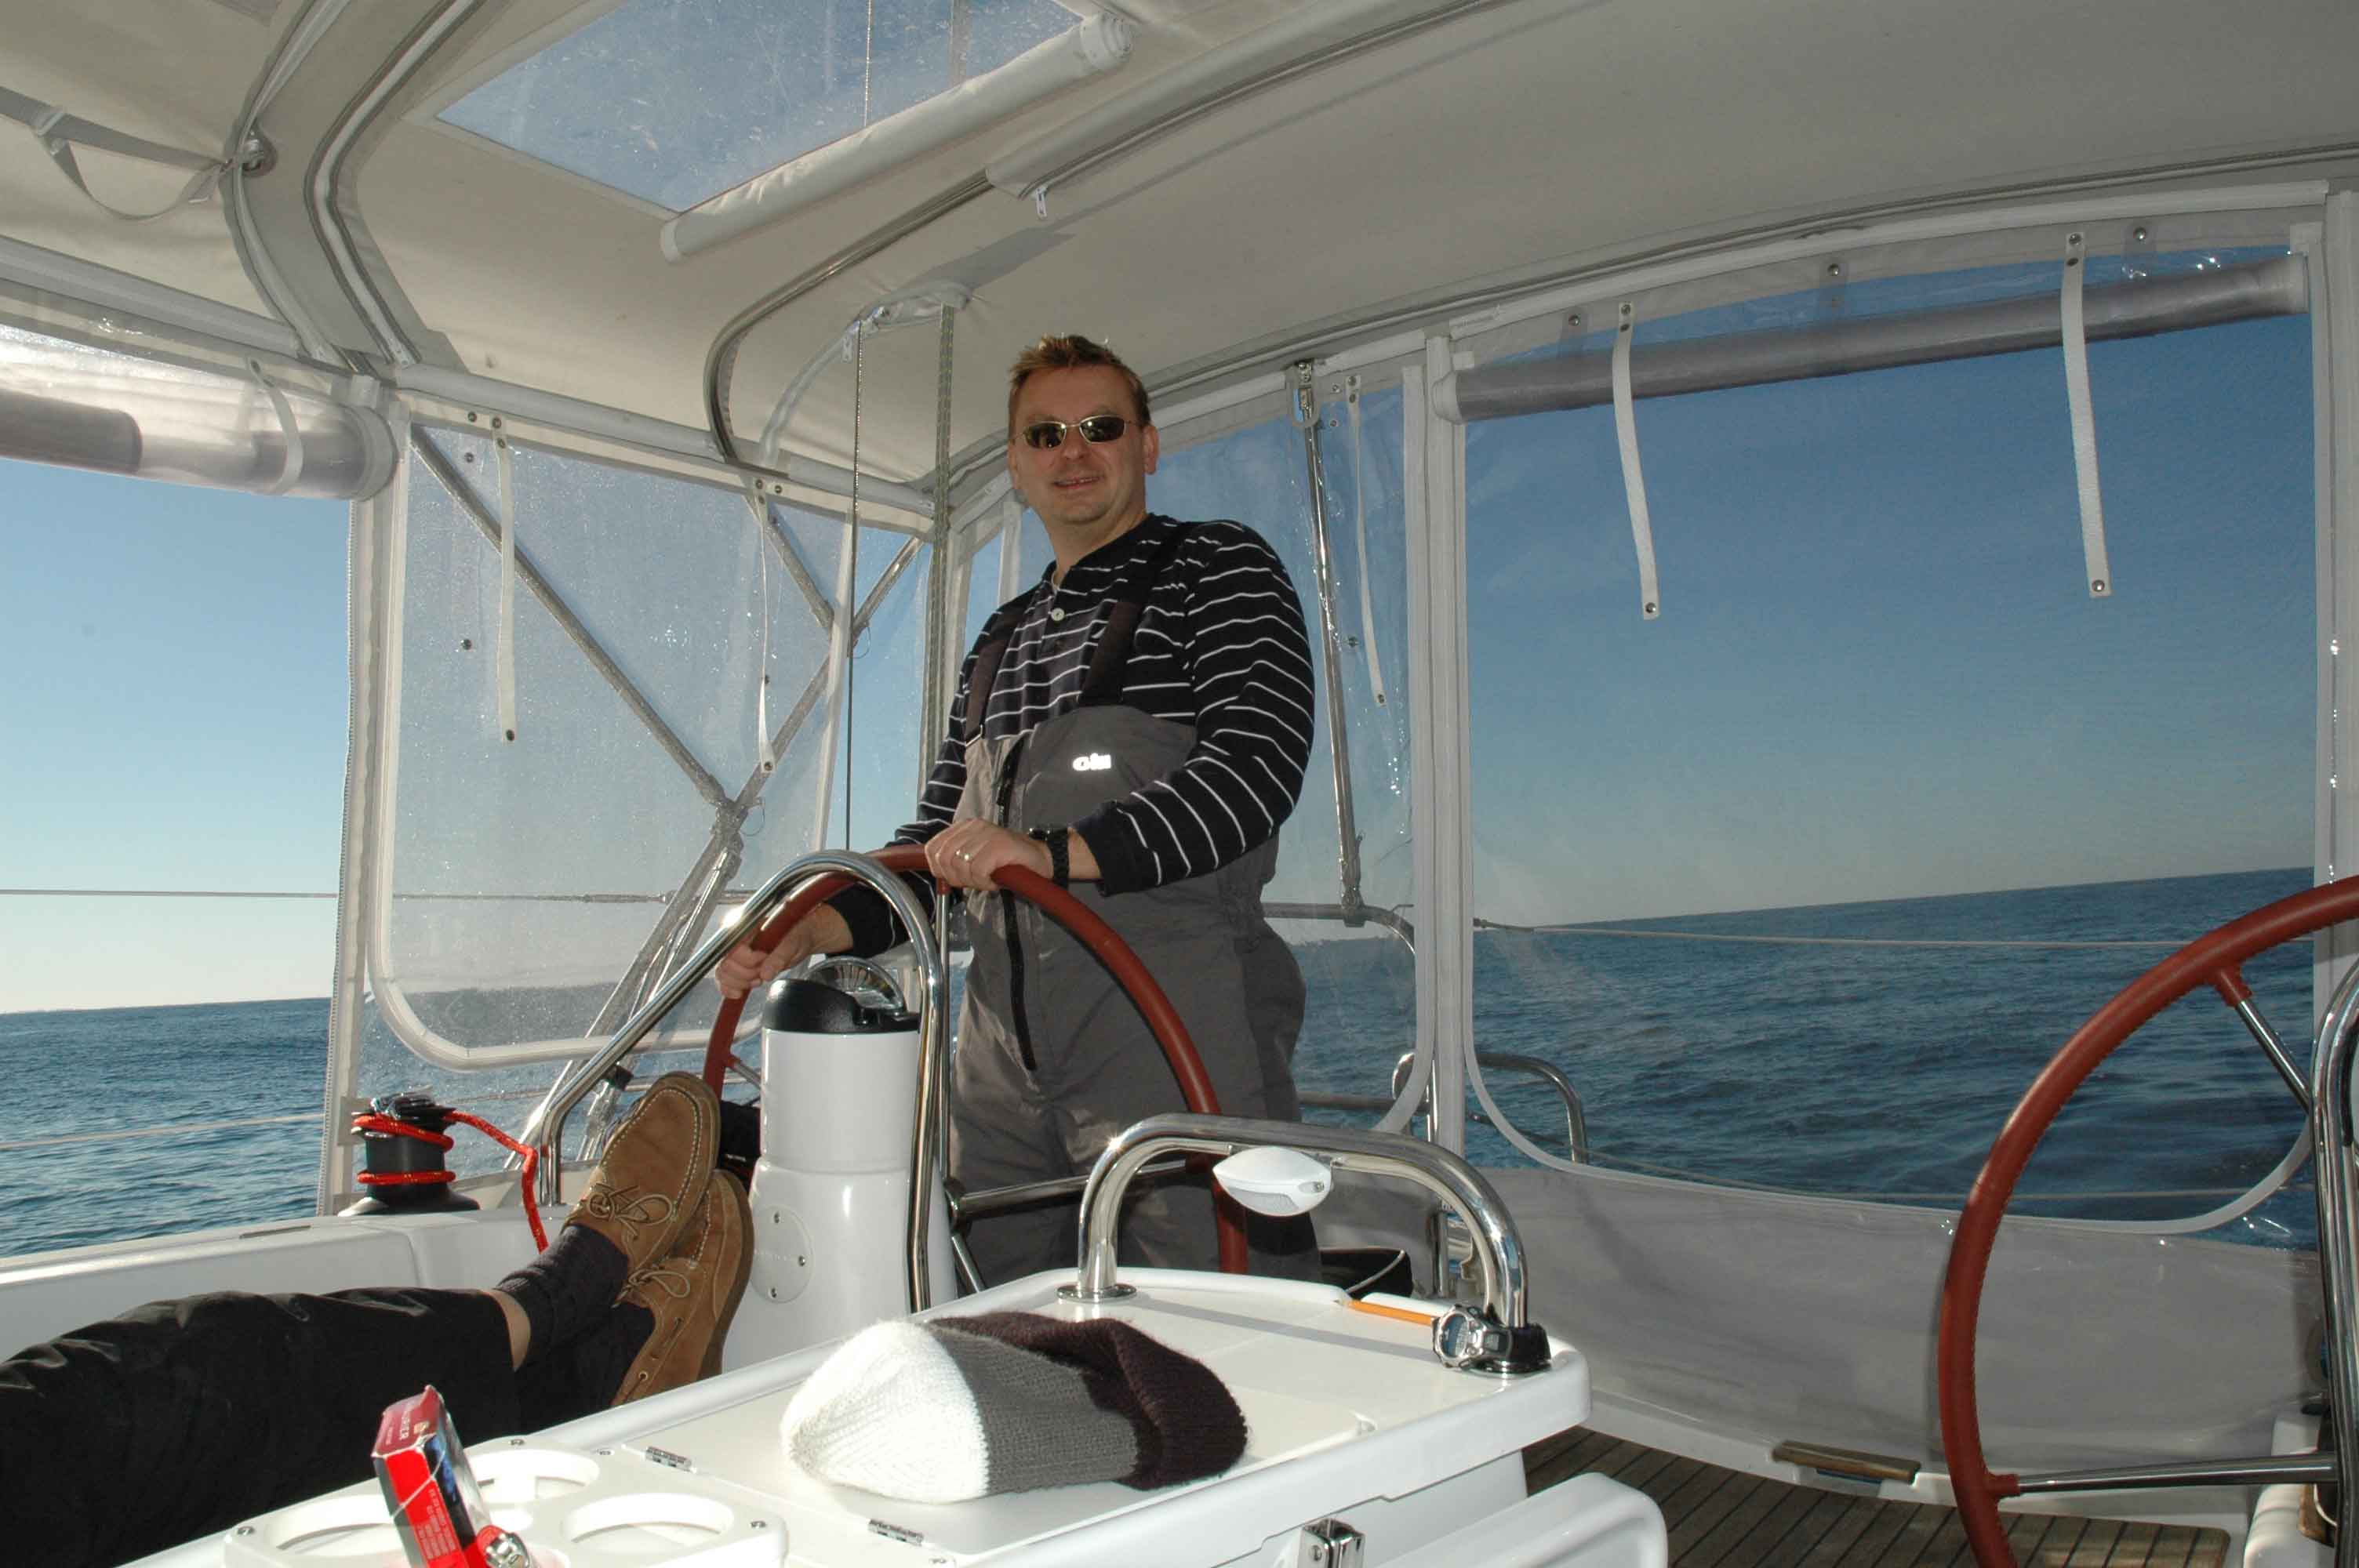 Ed enjoying some ocean sailing.